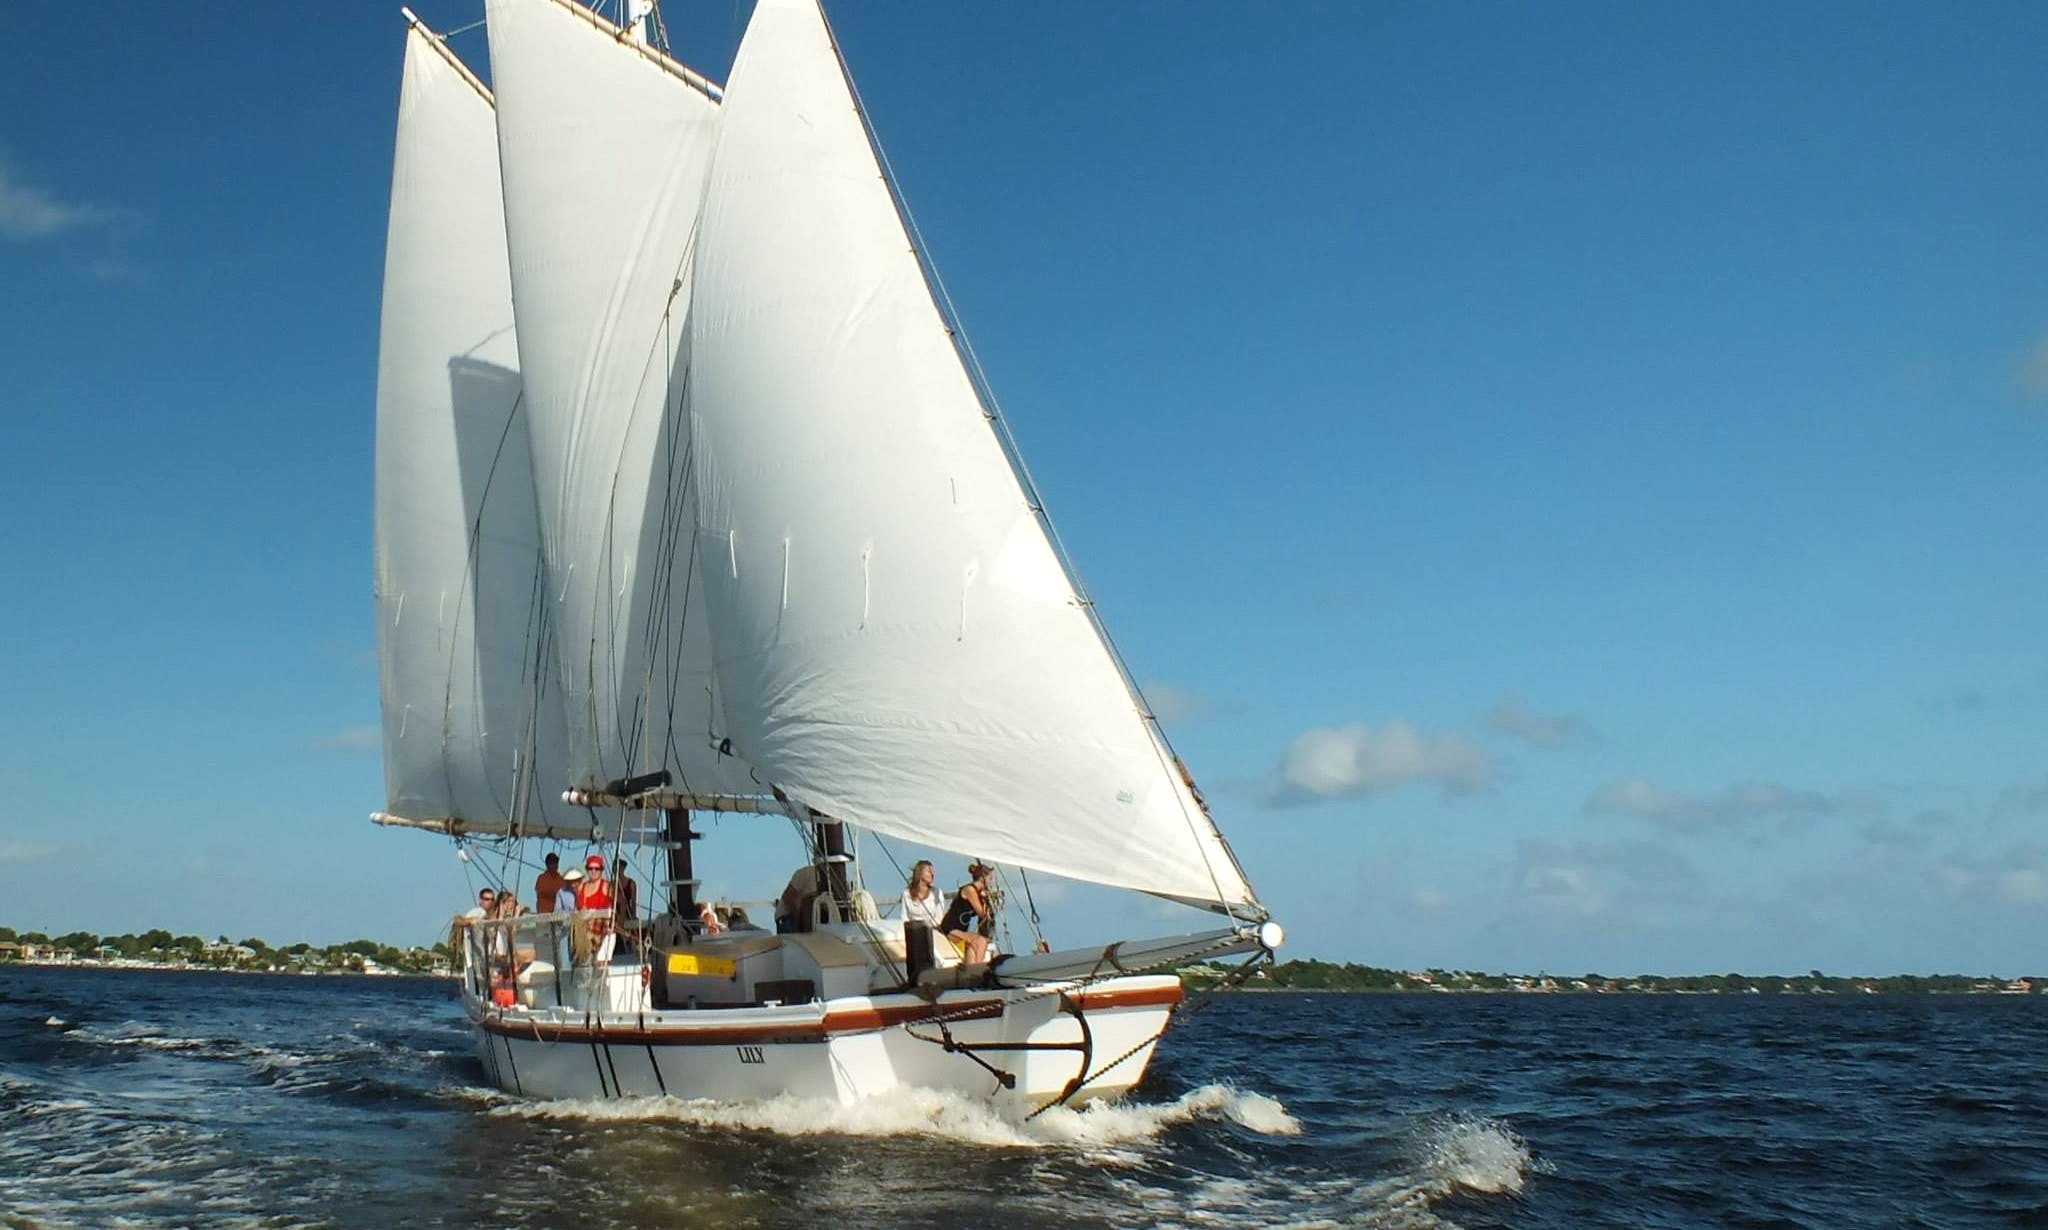 Beautiful Schooner Lily Sails the St. Lucie River